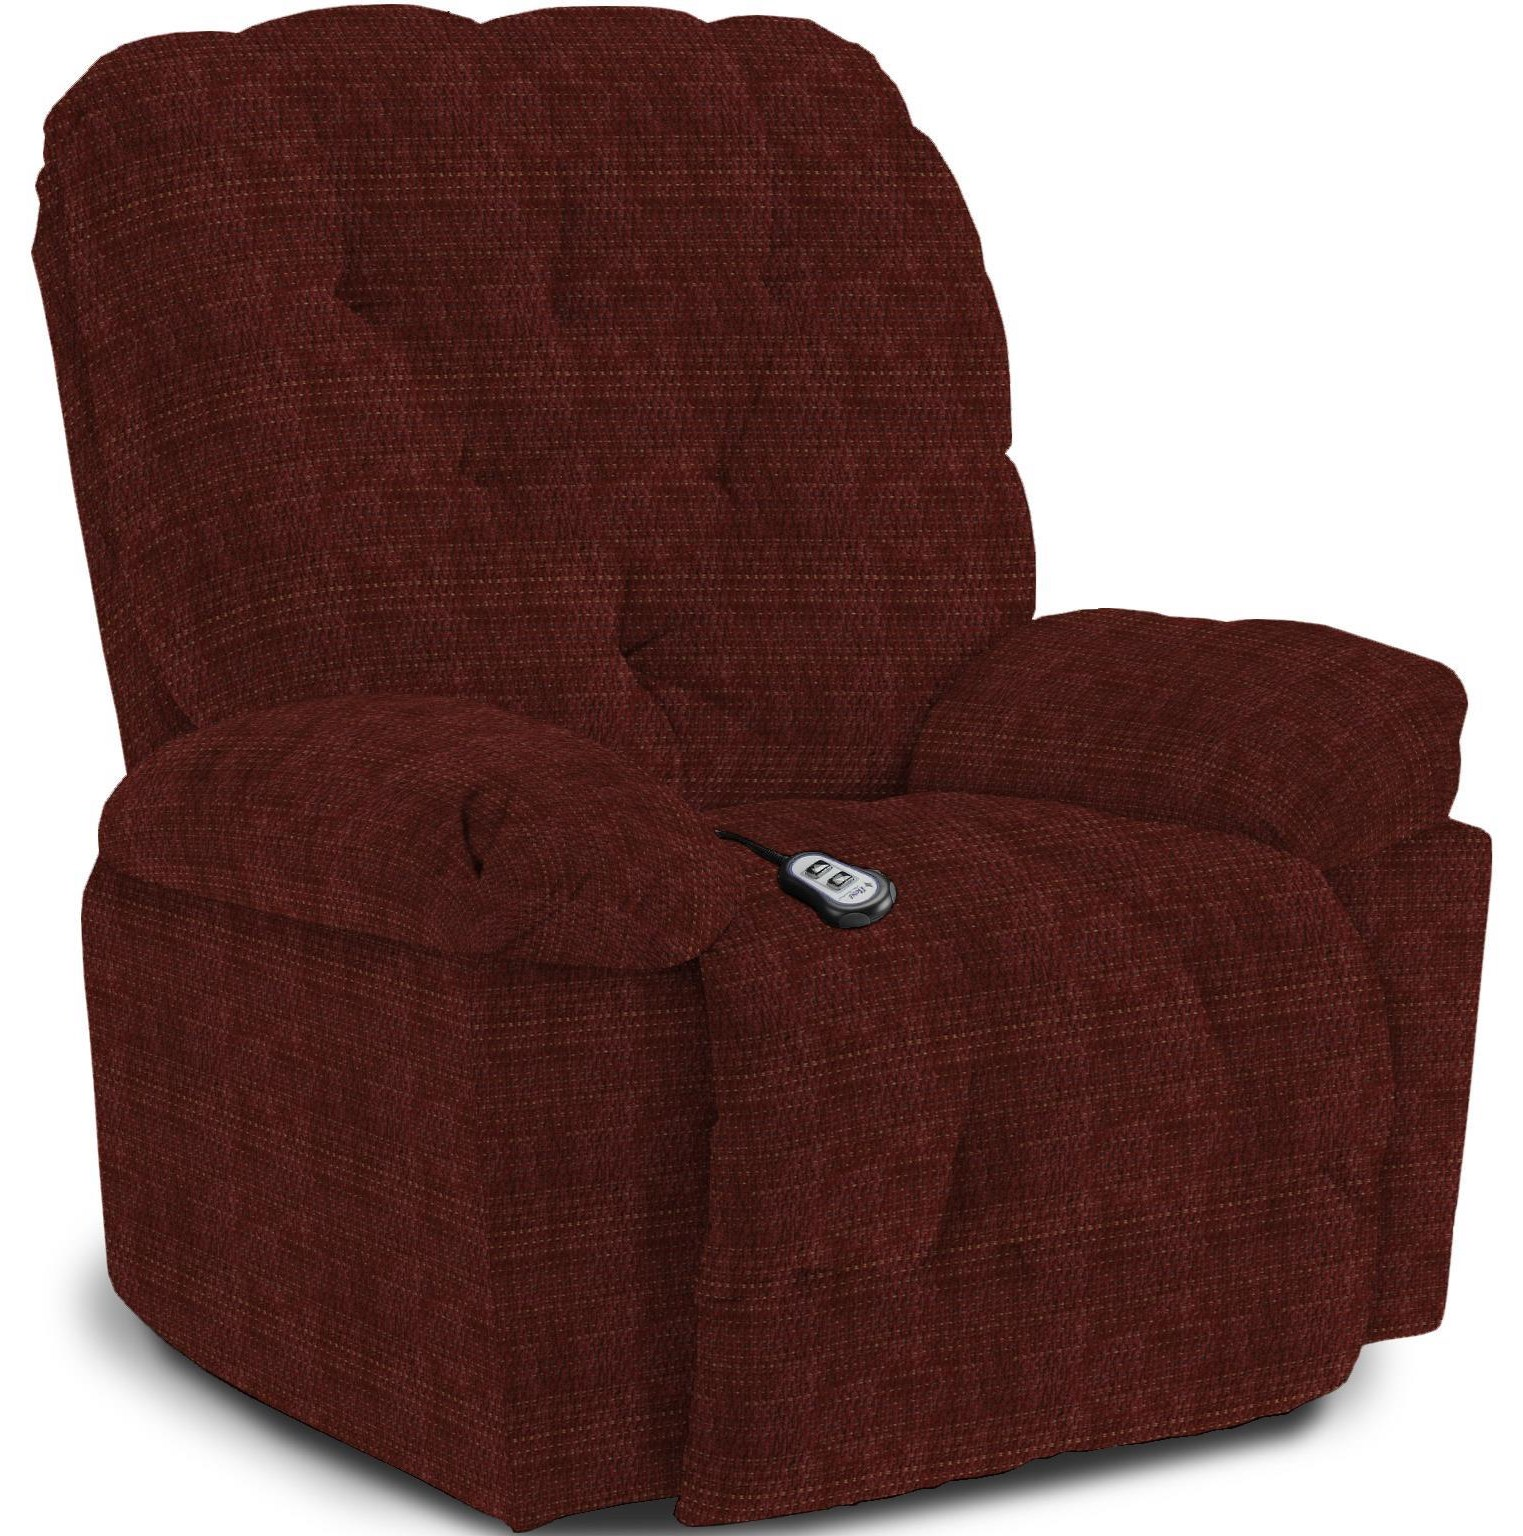 Charger Swivel Gliding Recliner by Best Home Furnishings at Crowley Furniture & Mattress